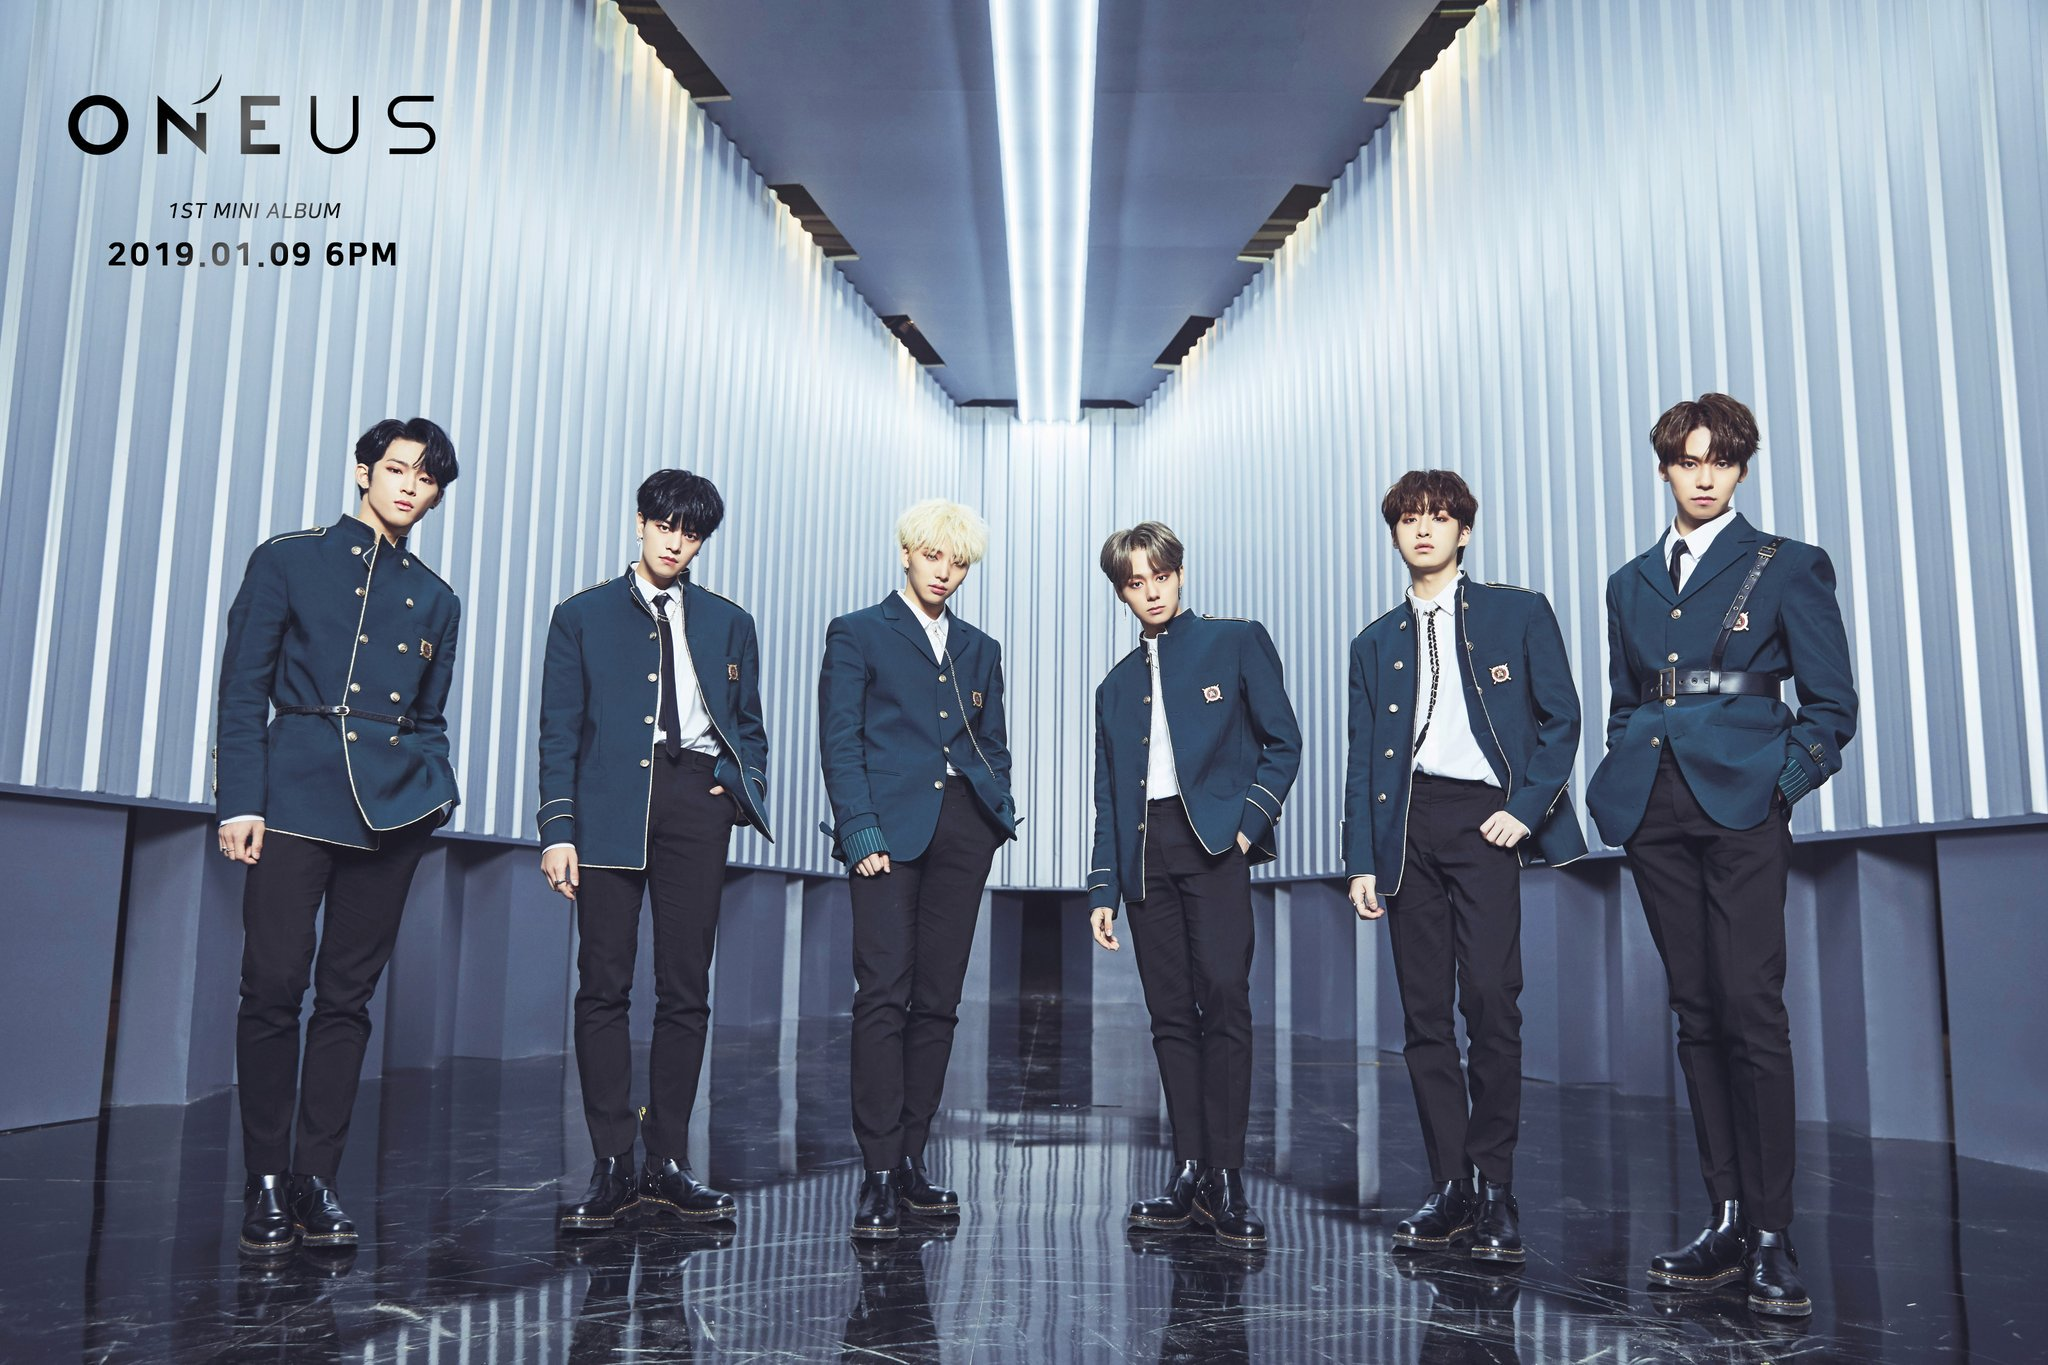 oneus, oneus profile, oneus news, oneus members, oneus facts, oneus height, oneues weight, oneus company, keonhee, hwanwoong,